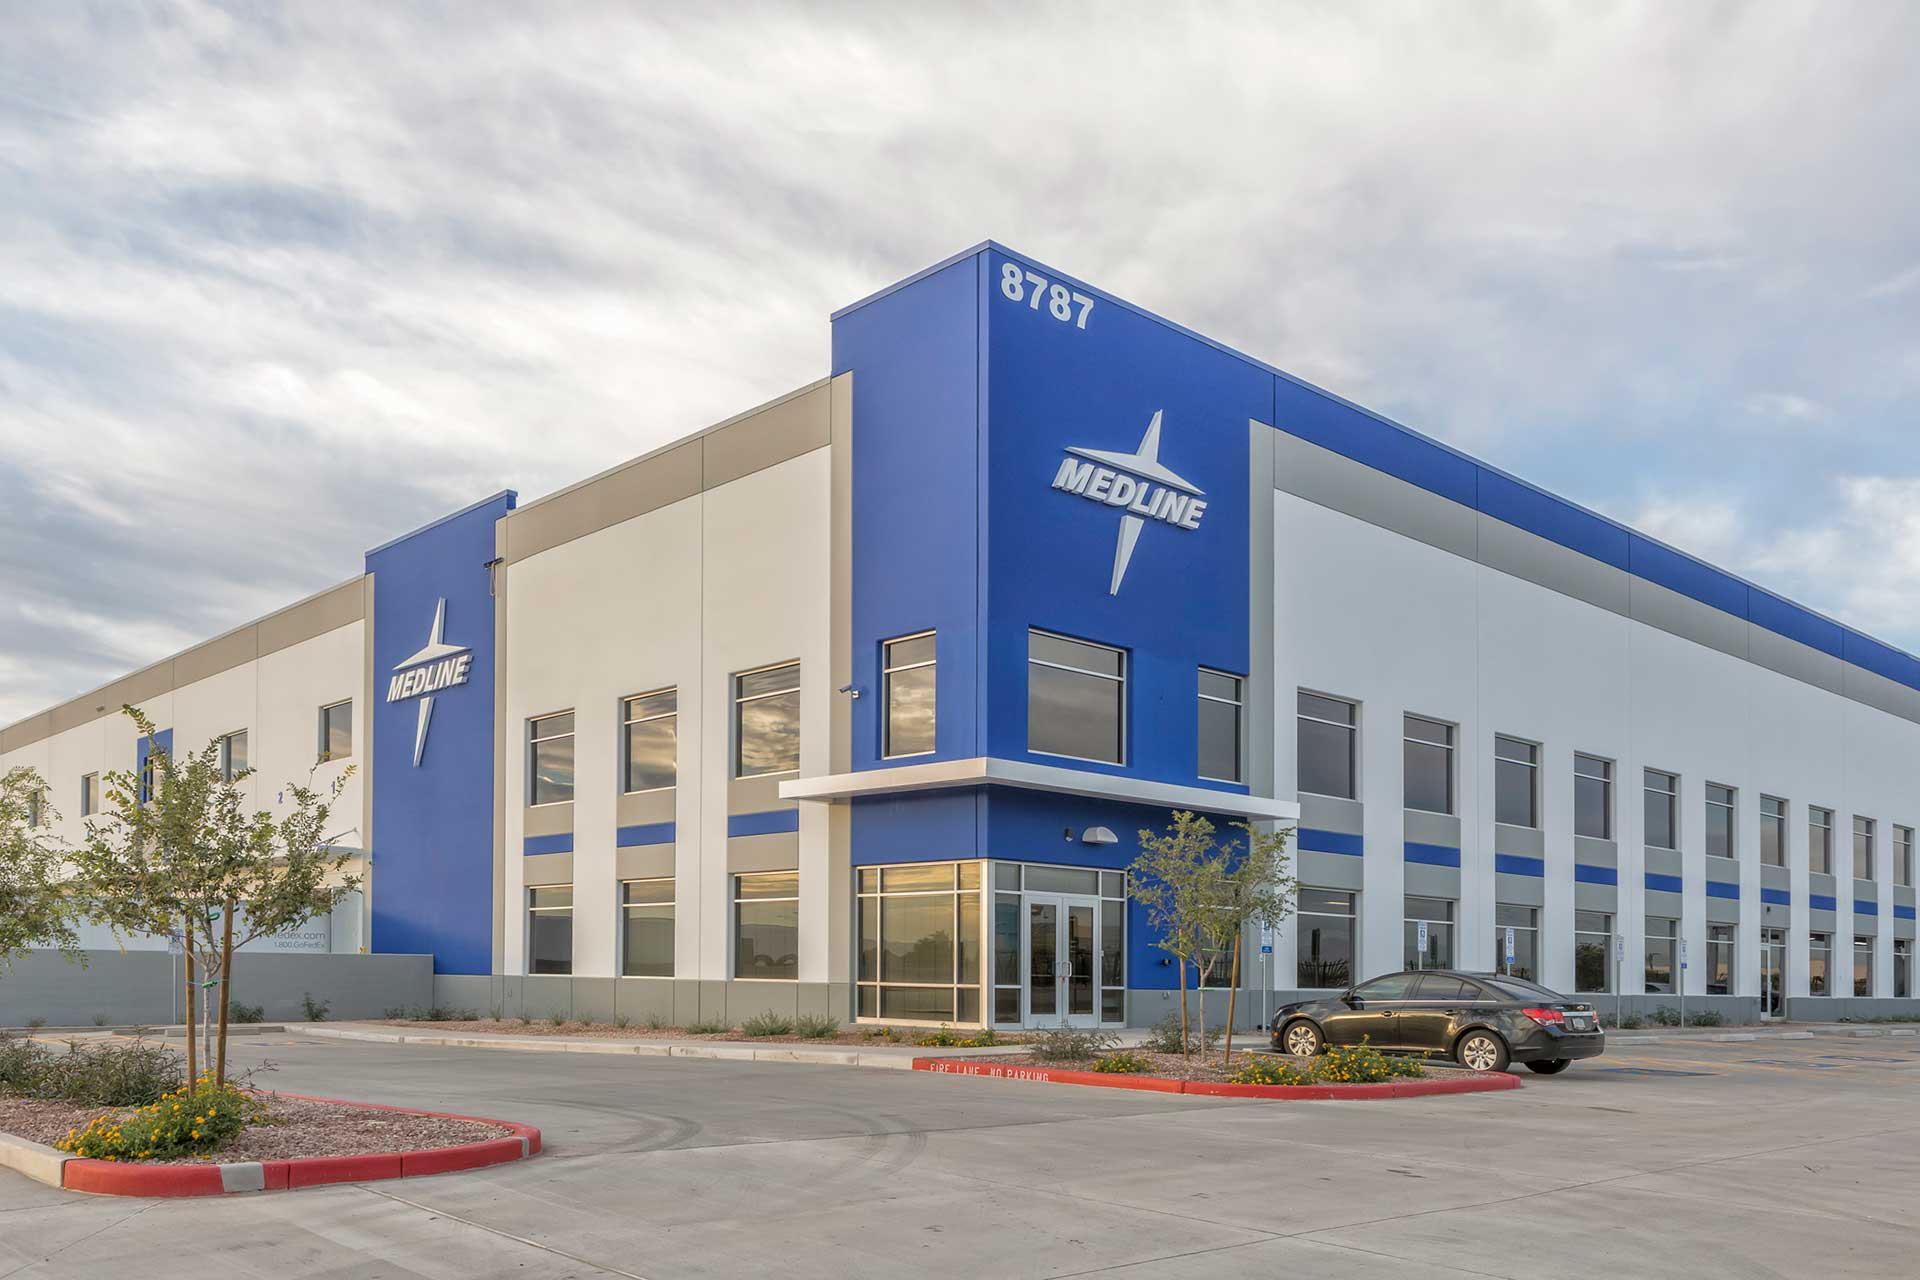 Exterior of Medline Industries distribution center in Phoenix, Arizona